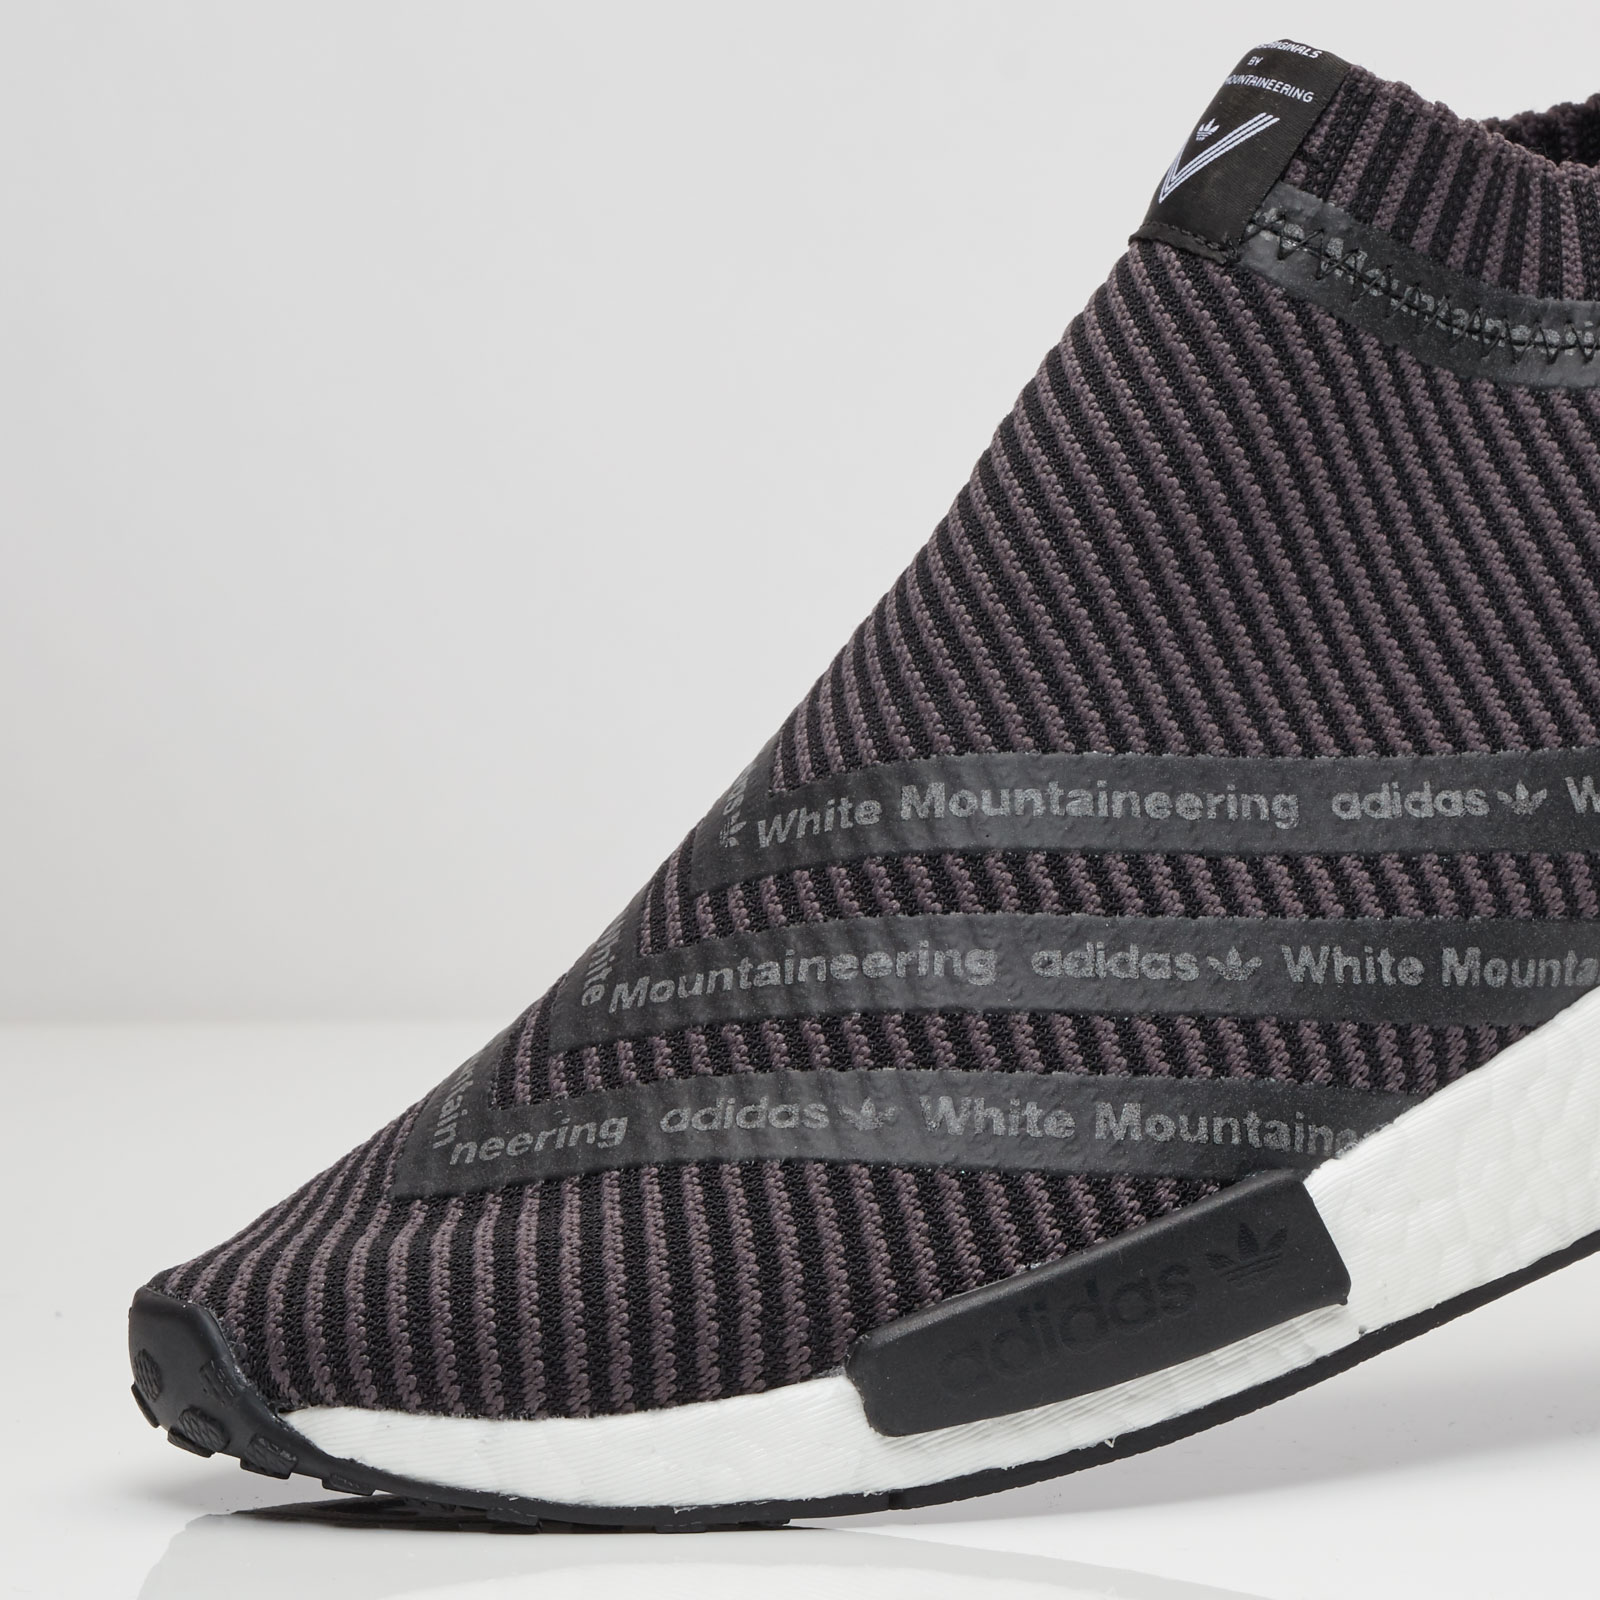 c9b94a25a adidas WM NMD City Sock - S80529 - Sneakersnstuff